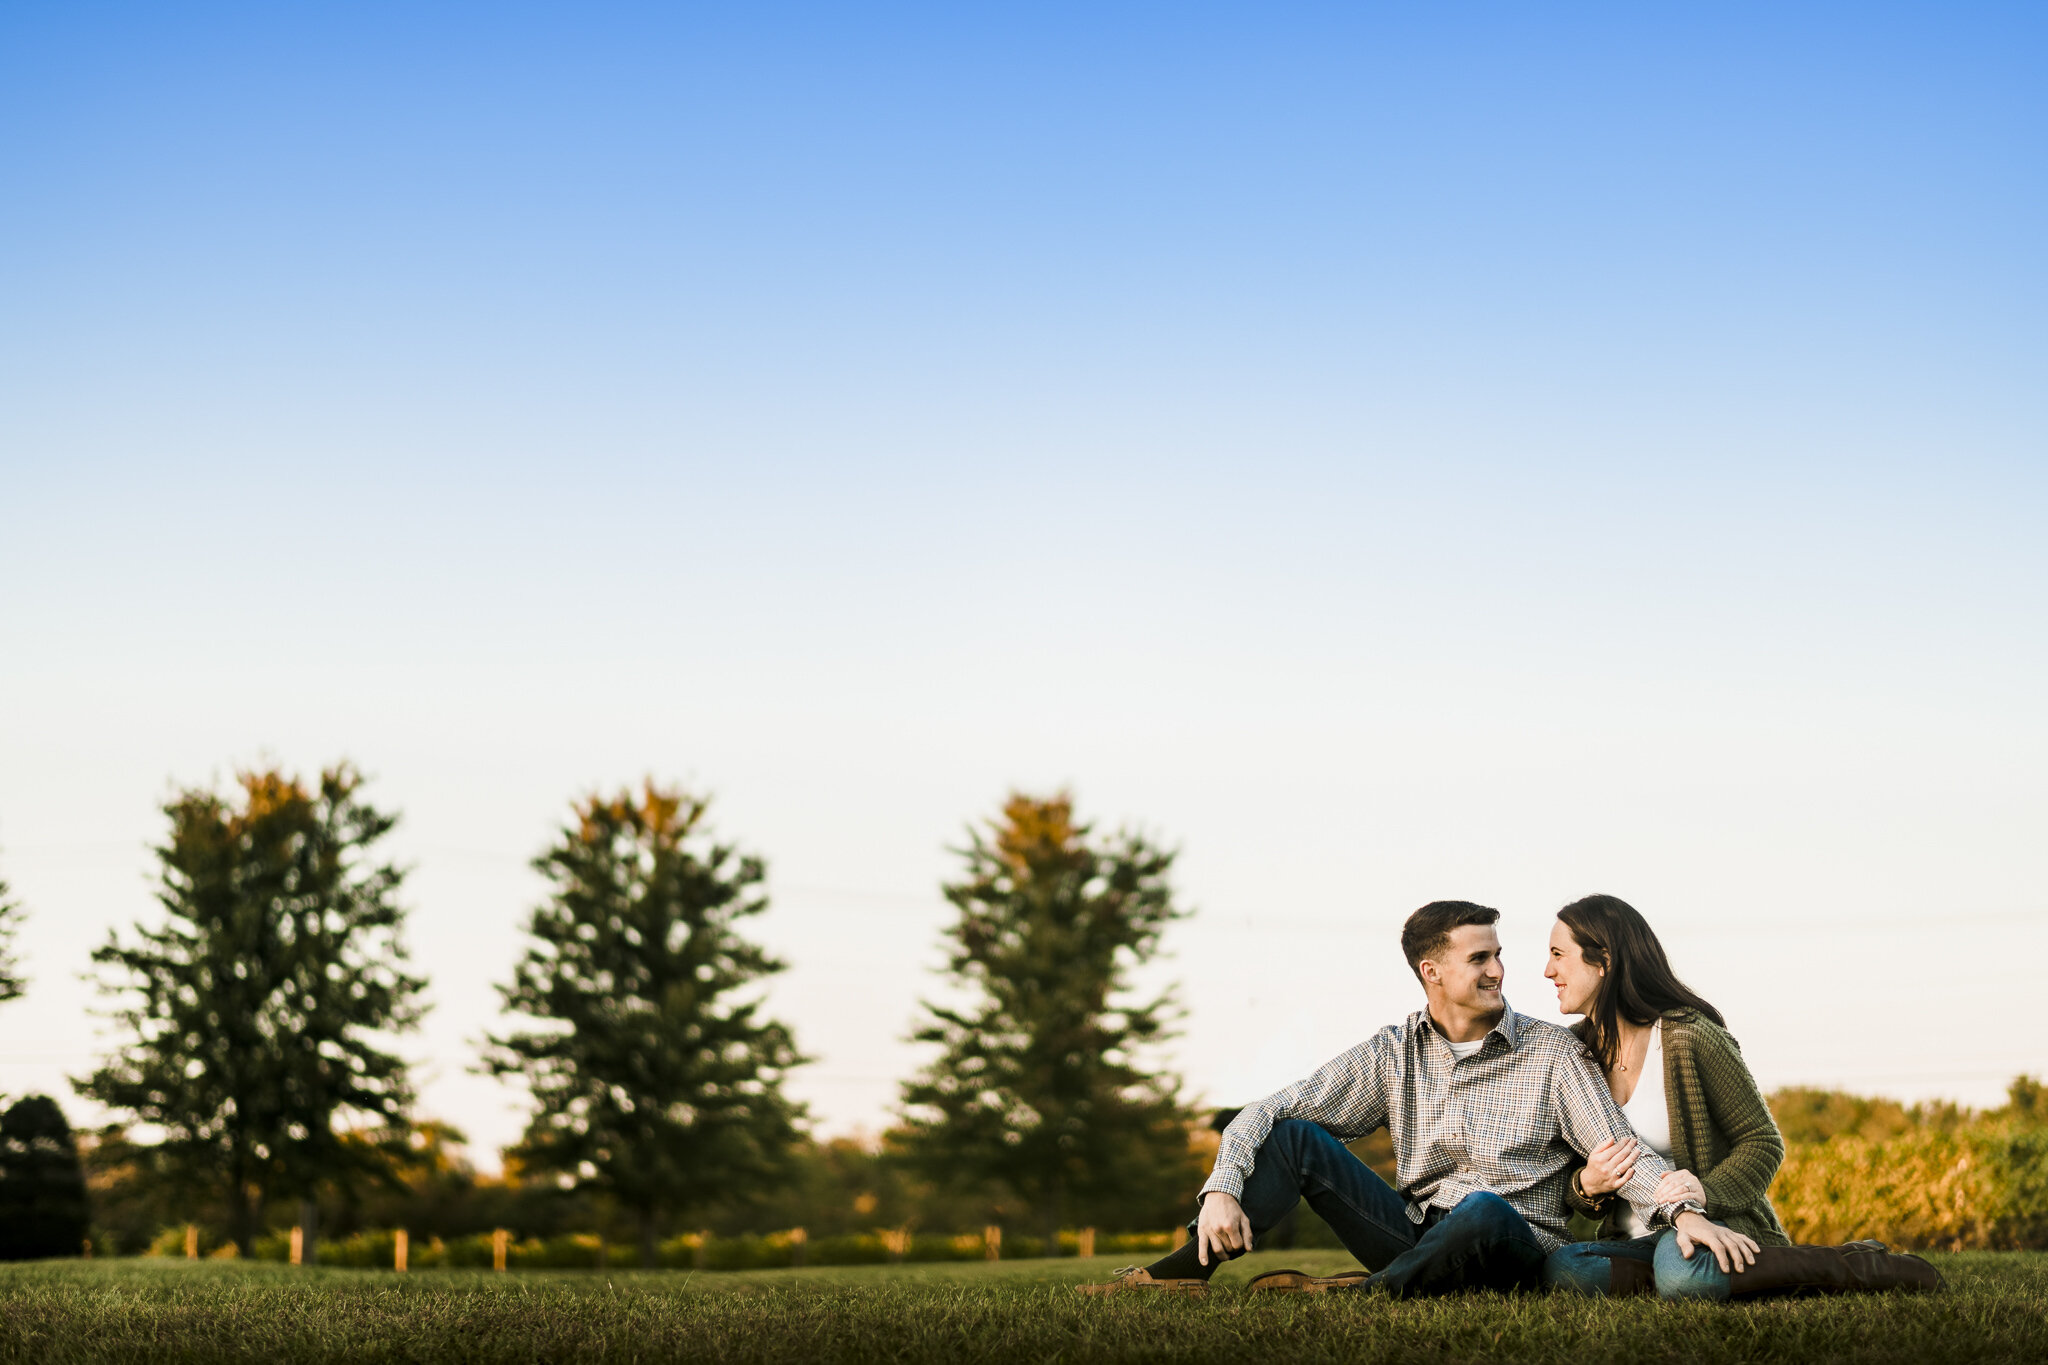 Carlin-White-Horse-Winery-Engagement-Photos-14.JPG